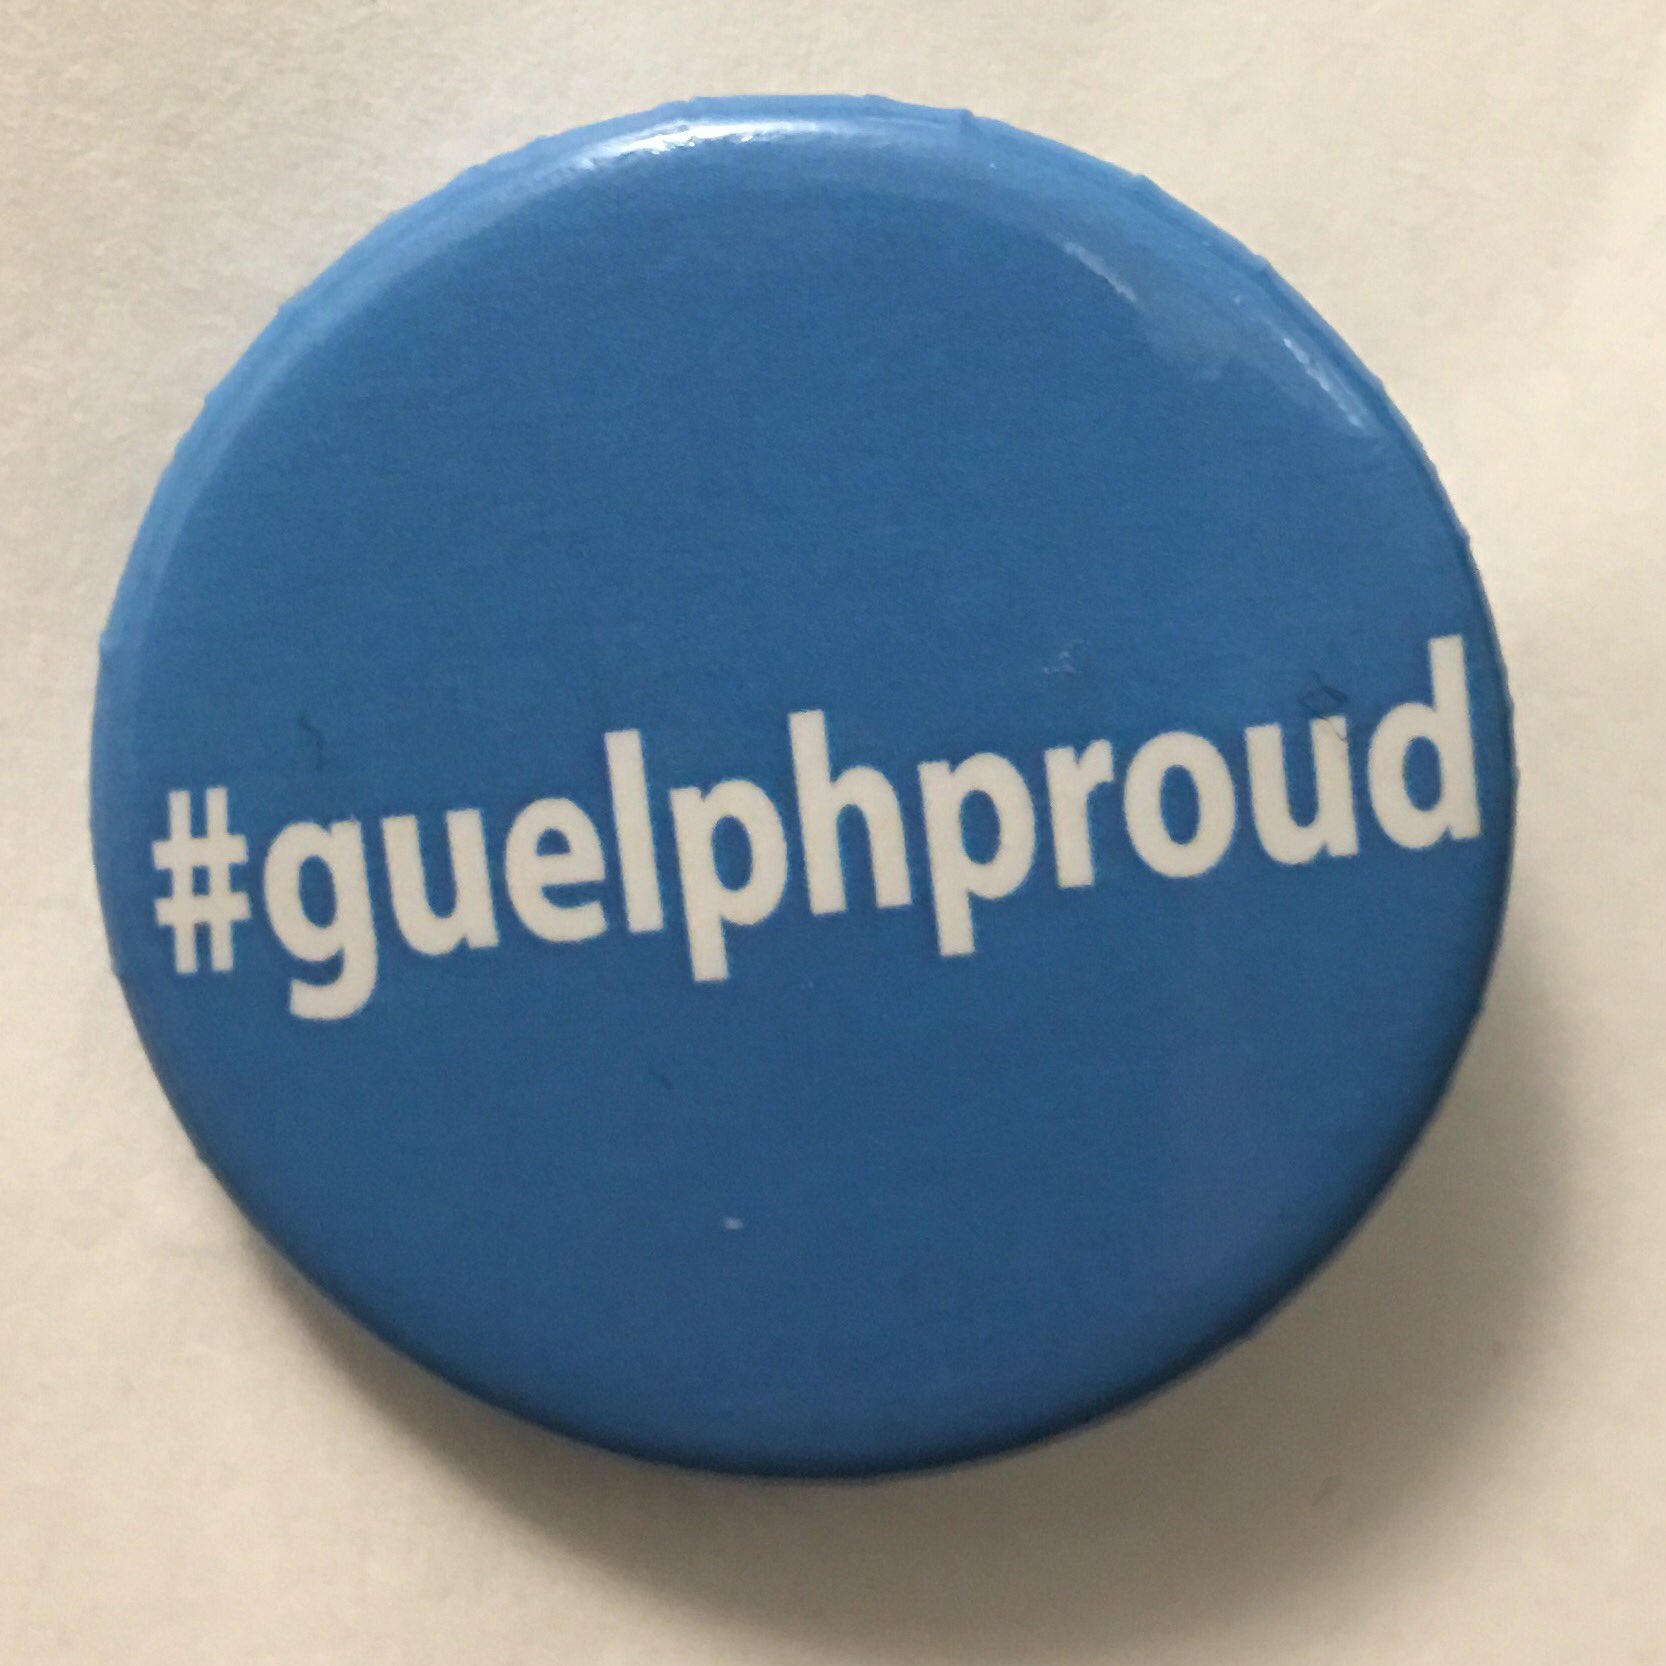 Looking forward to delivering my State of the City this morning! We have much to be proud of in #Guelph! @GuelphChamber #GuelphProud https://t.co/gDAEQ60Kau